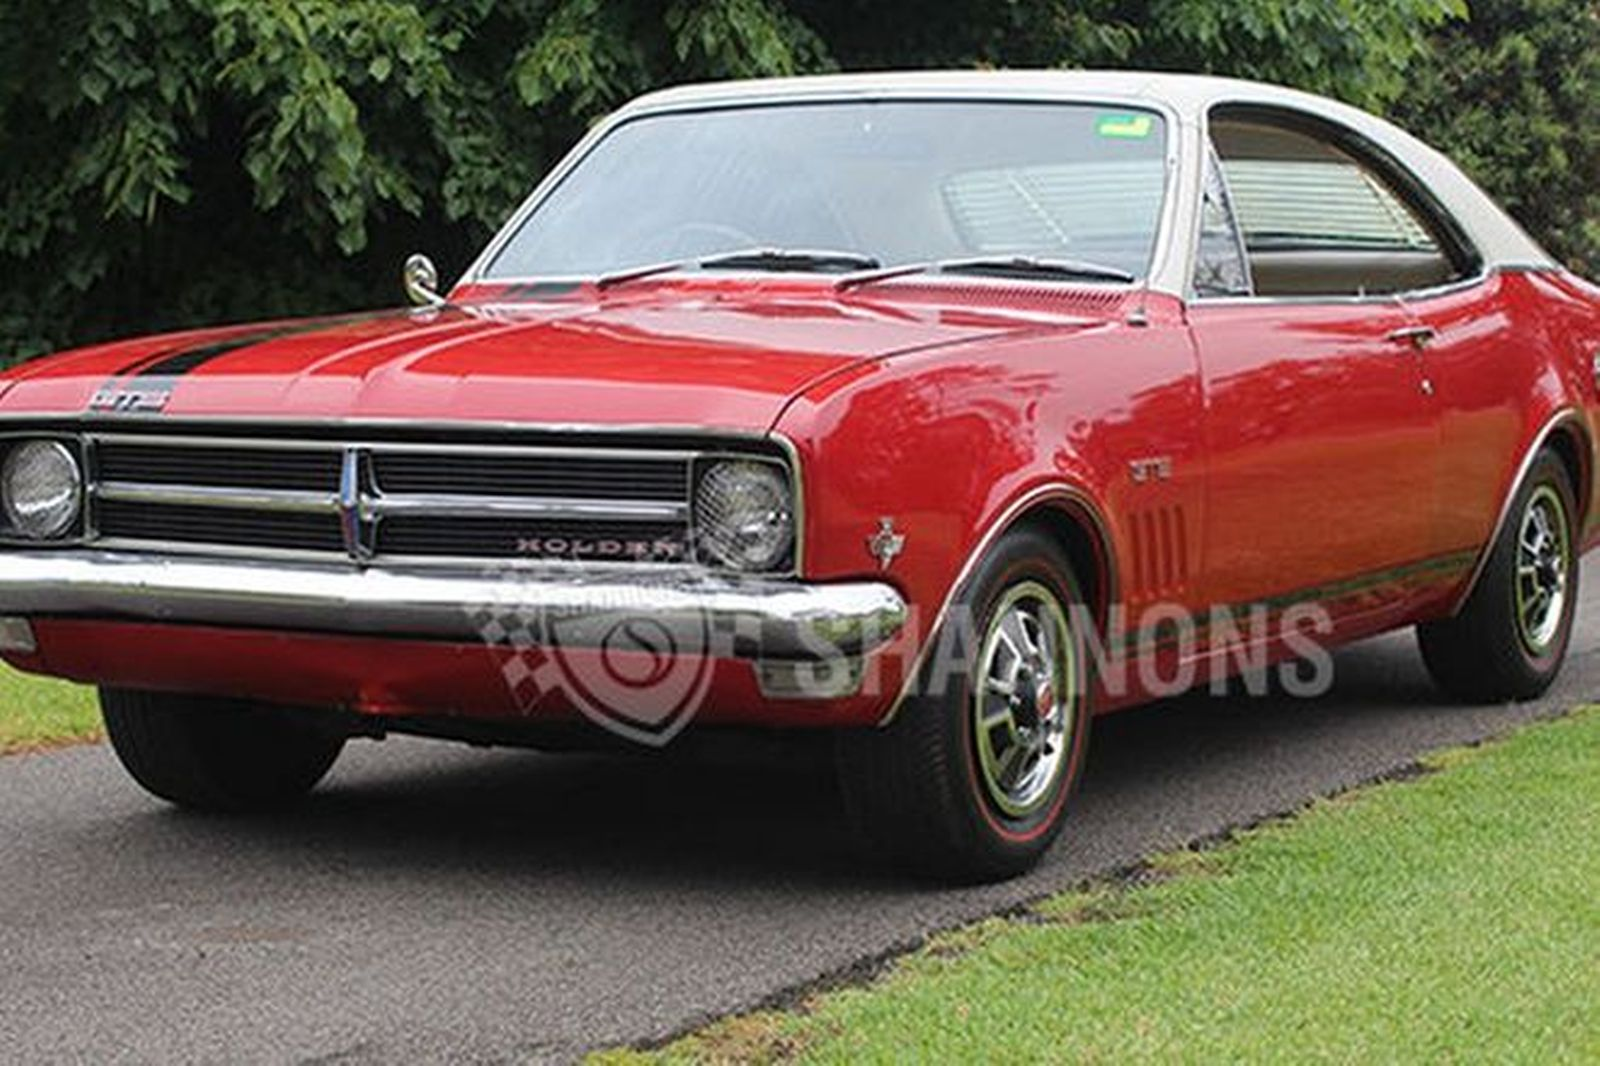 Aussie-US Muscle Cars from \'60s and \'70s face off at Shannons Feb 23 ...